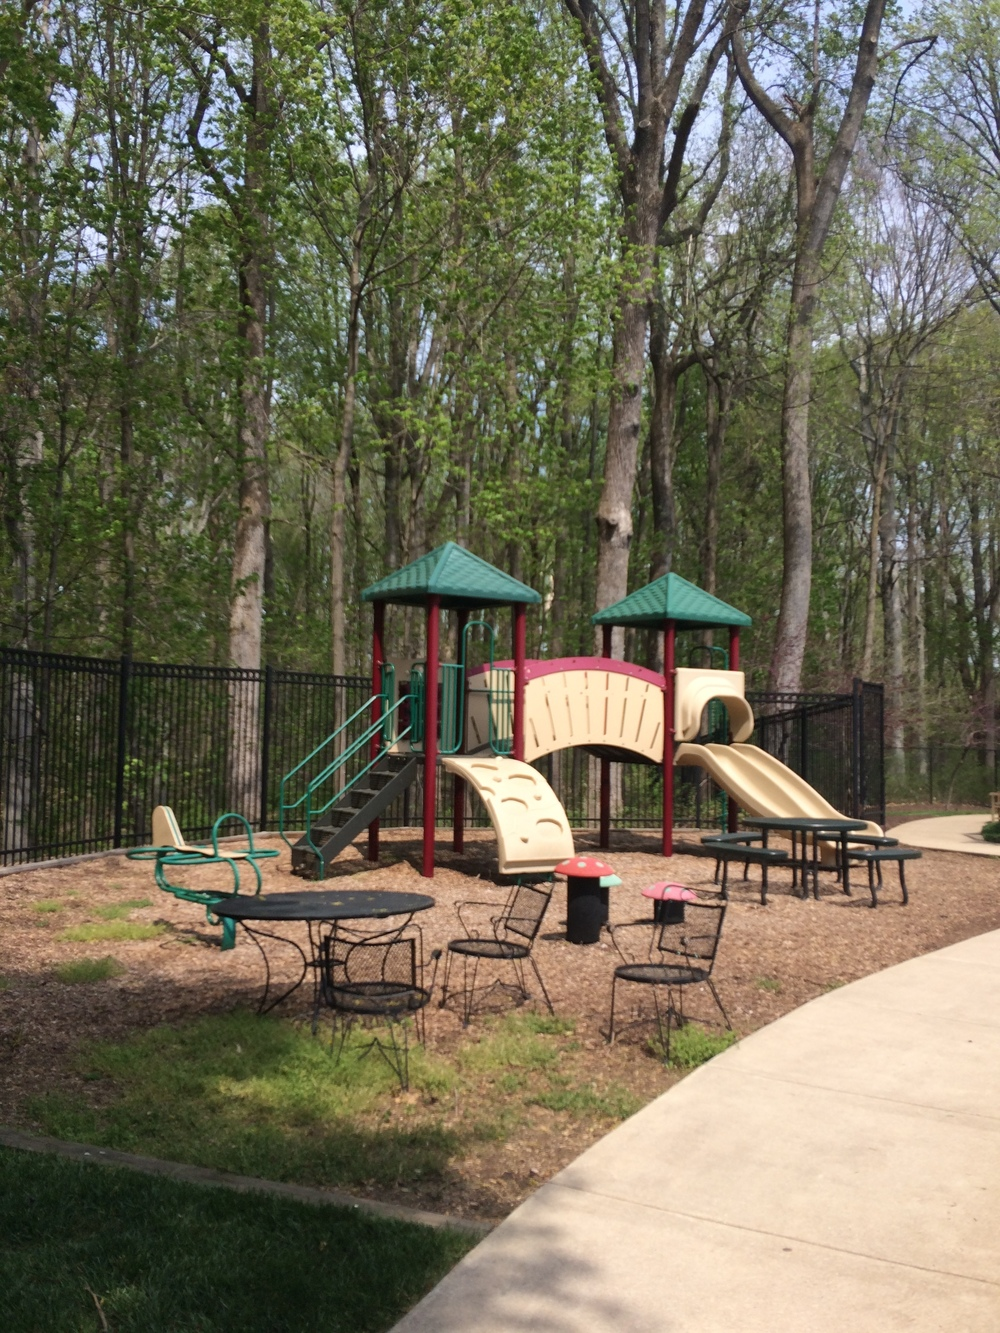 The playground in the backyard of the assisted living and memory care homes.